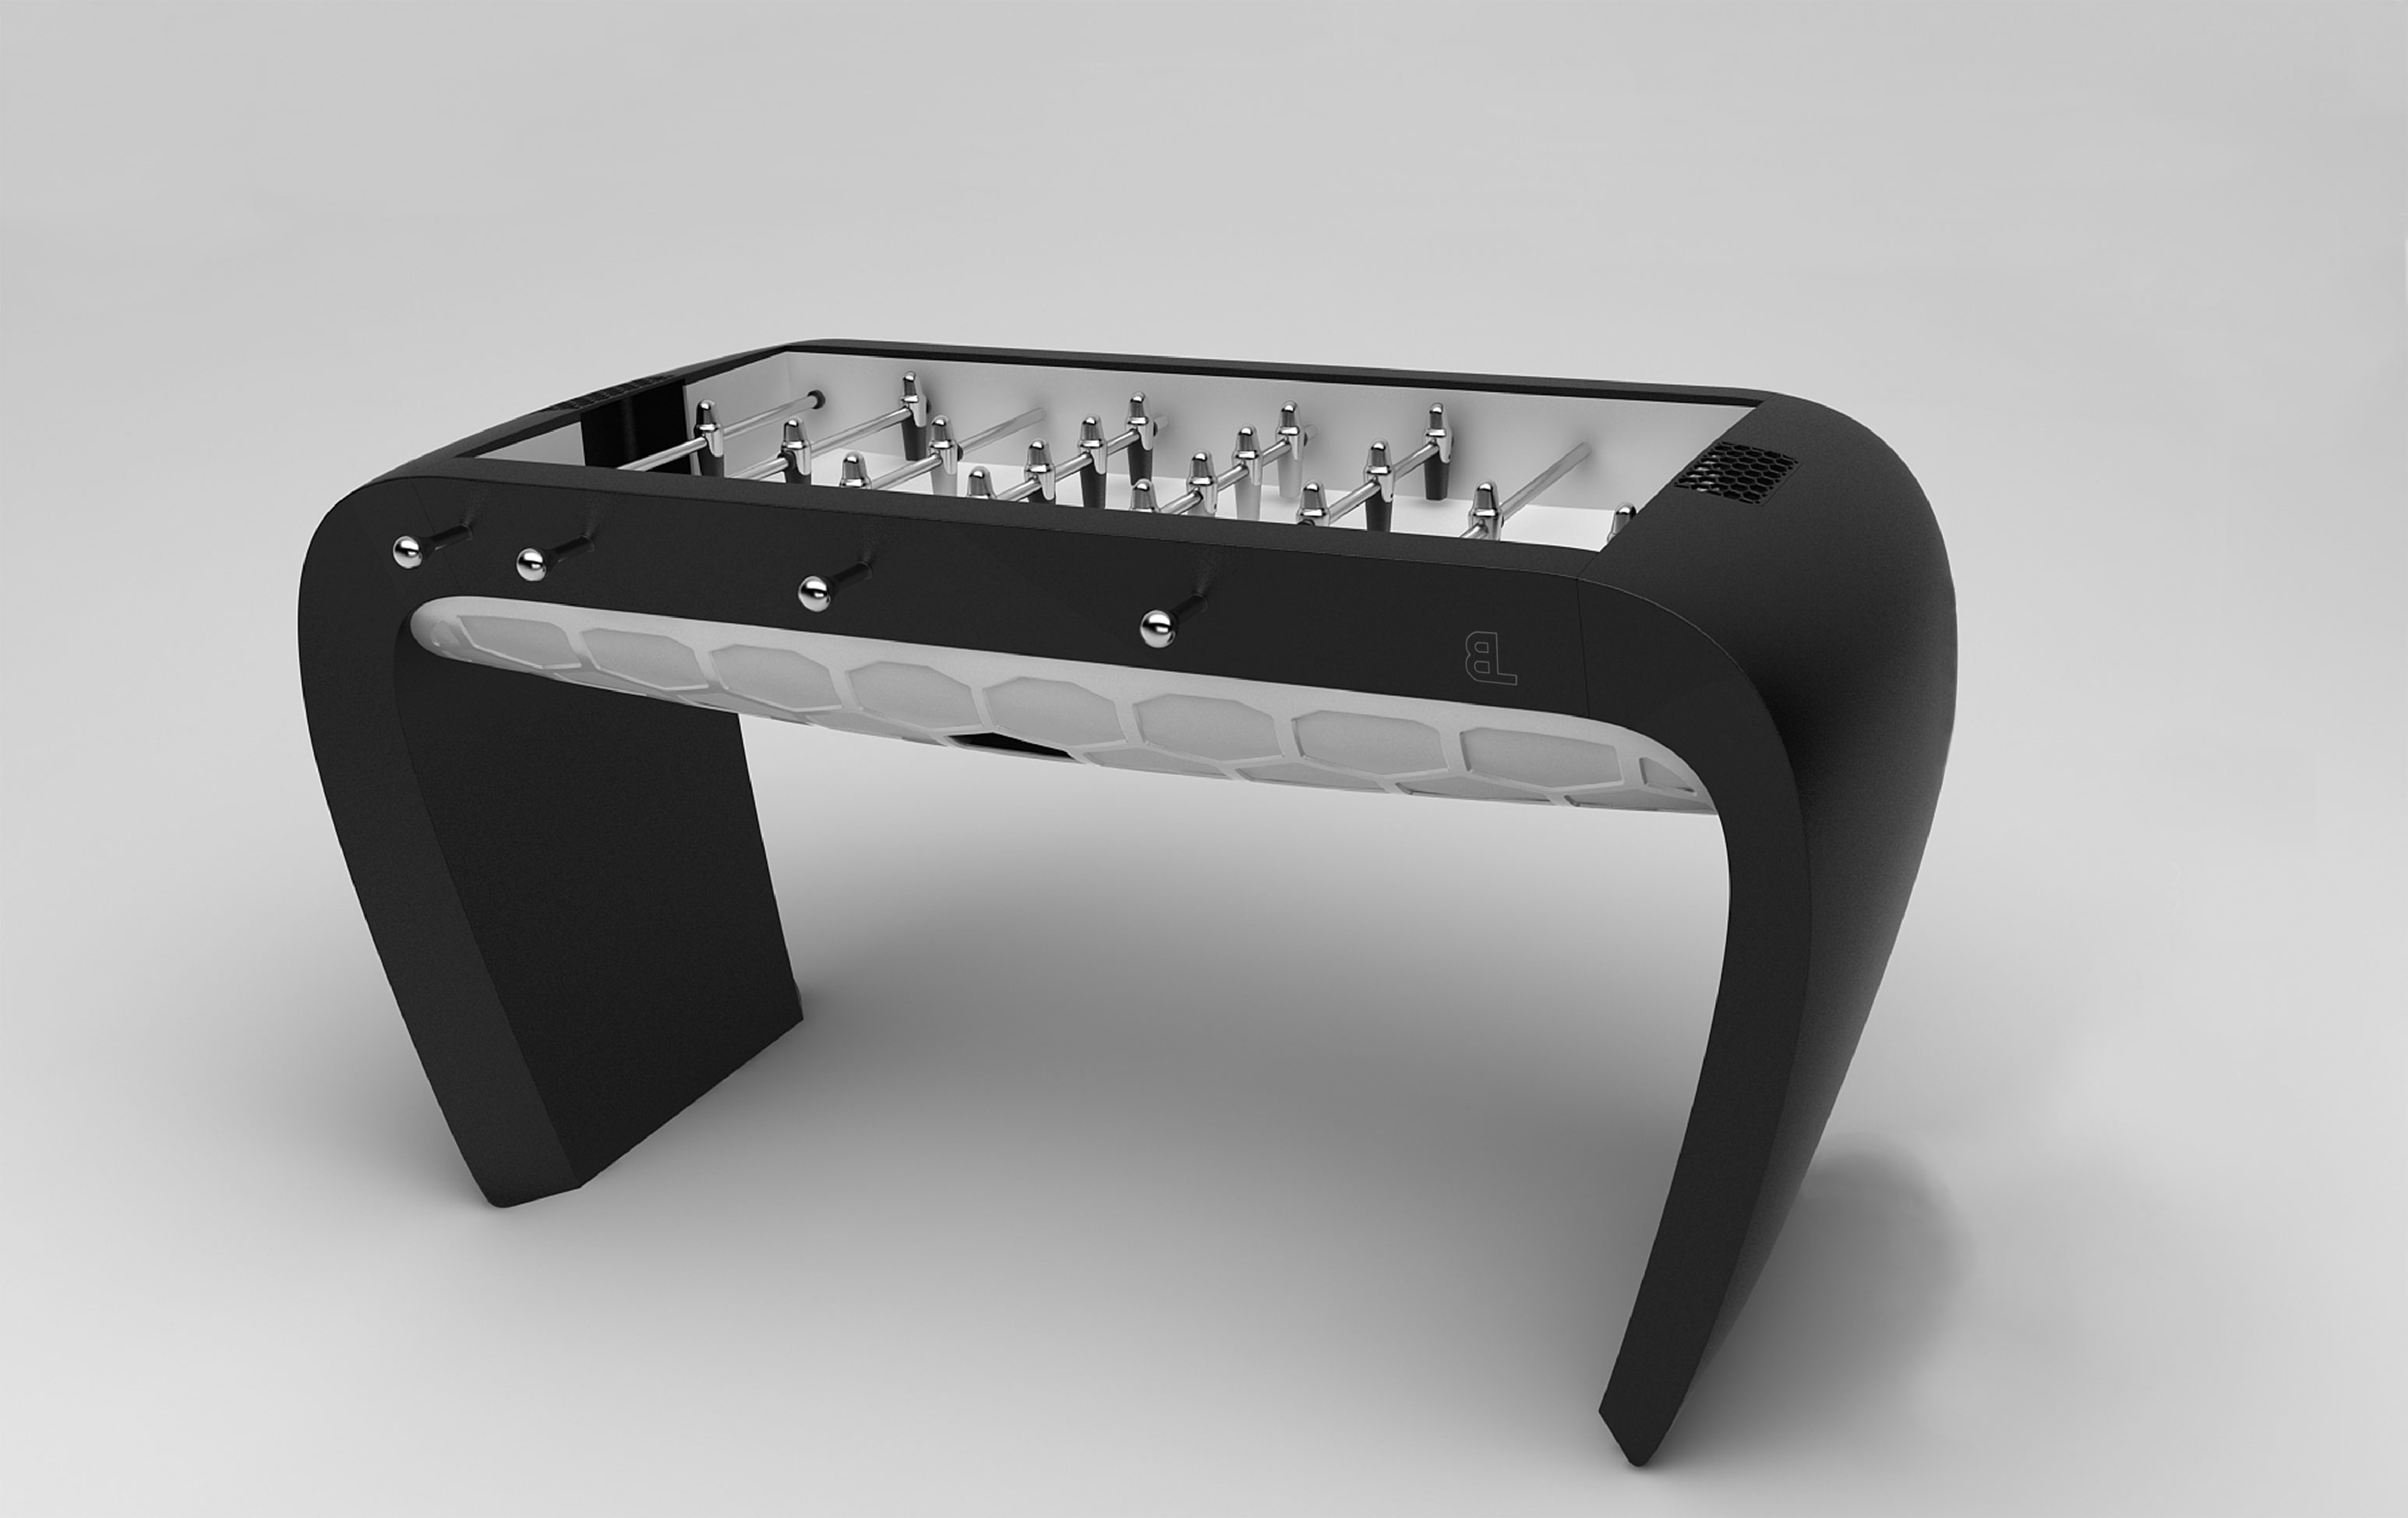 Blackball Foosball Table - Debuchy by Toulet